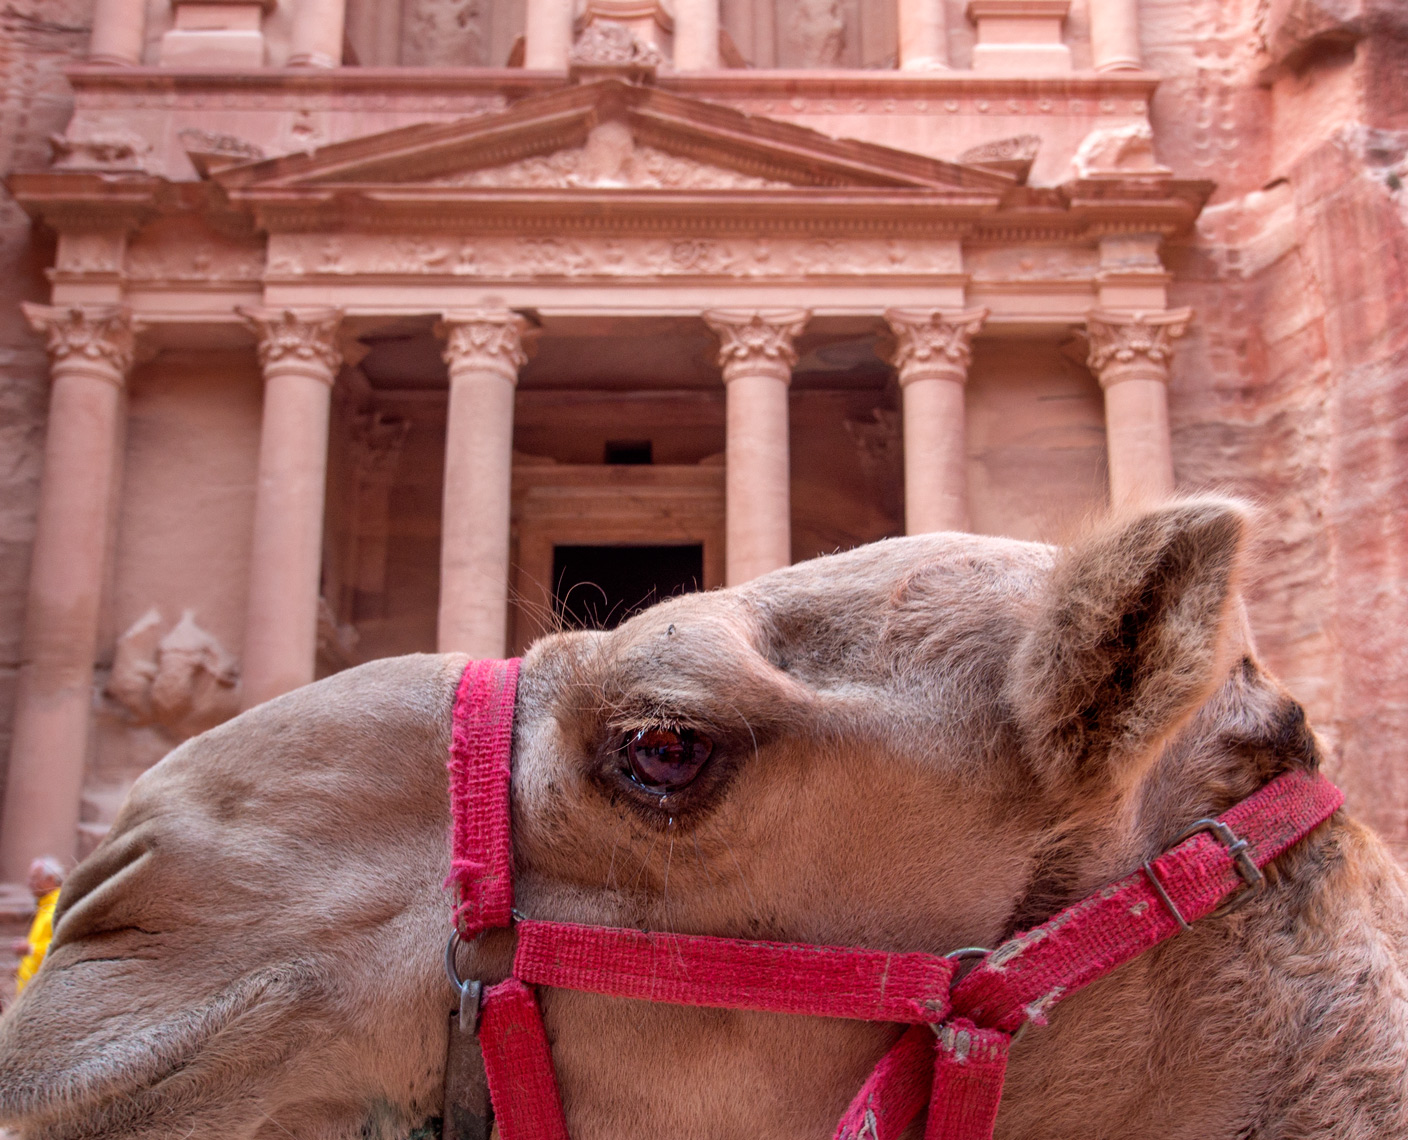 Petra, Jordan Treasury and camel